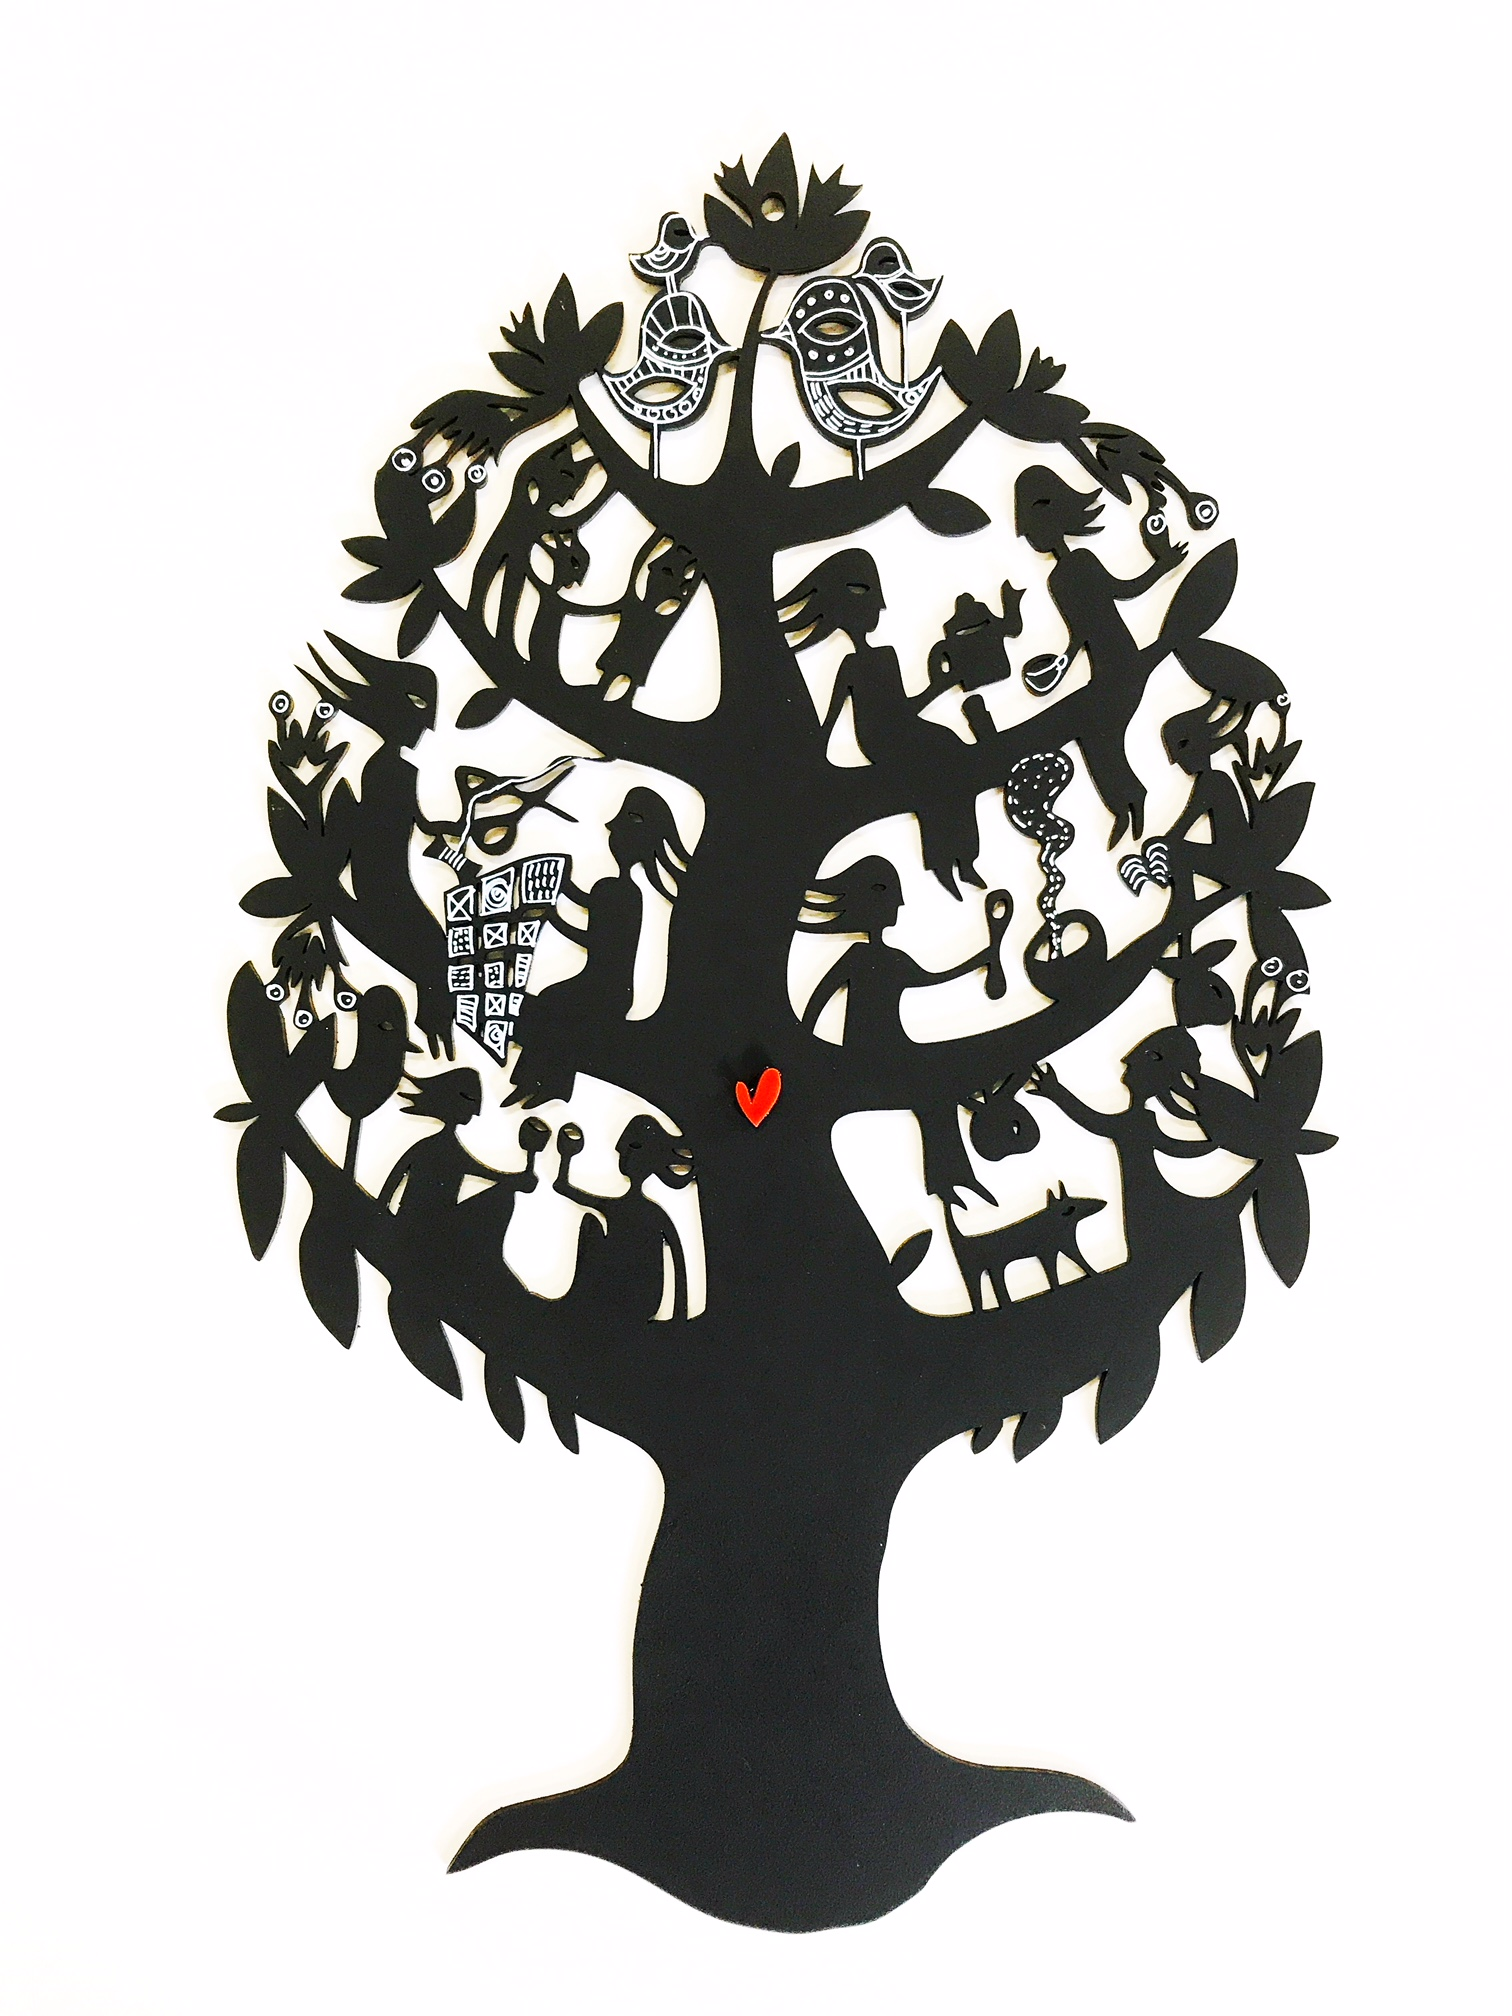 Friendship Tree woodcut